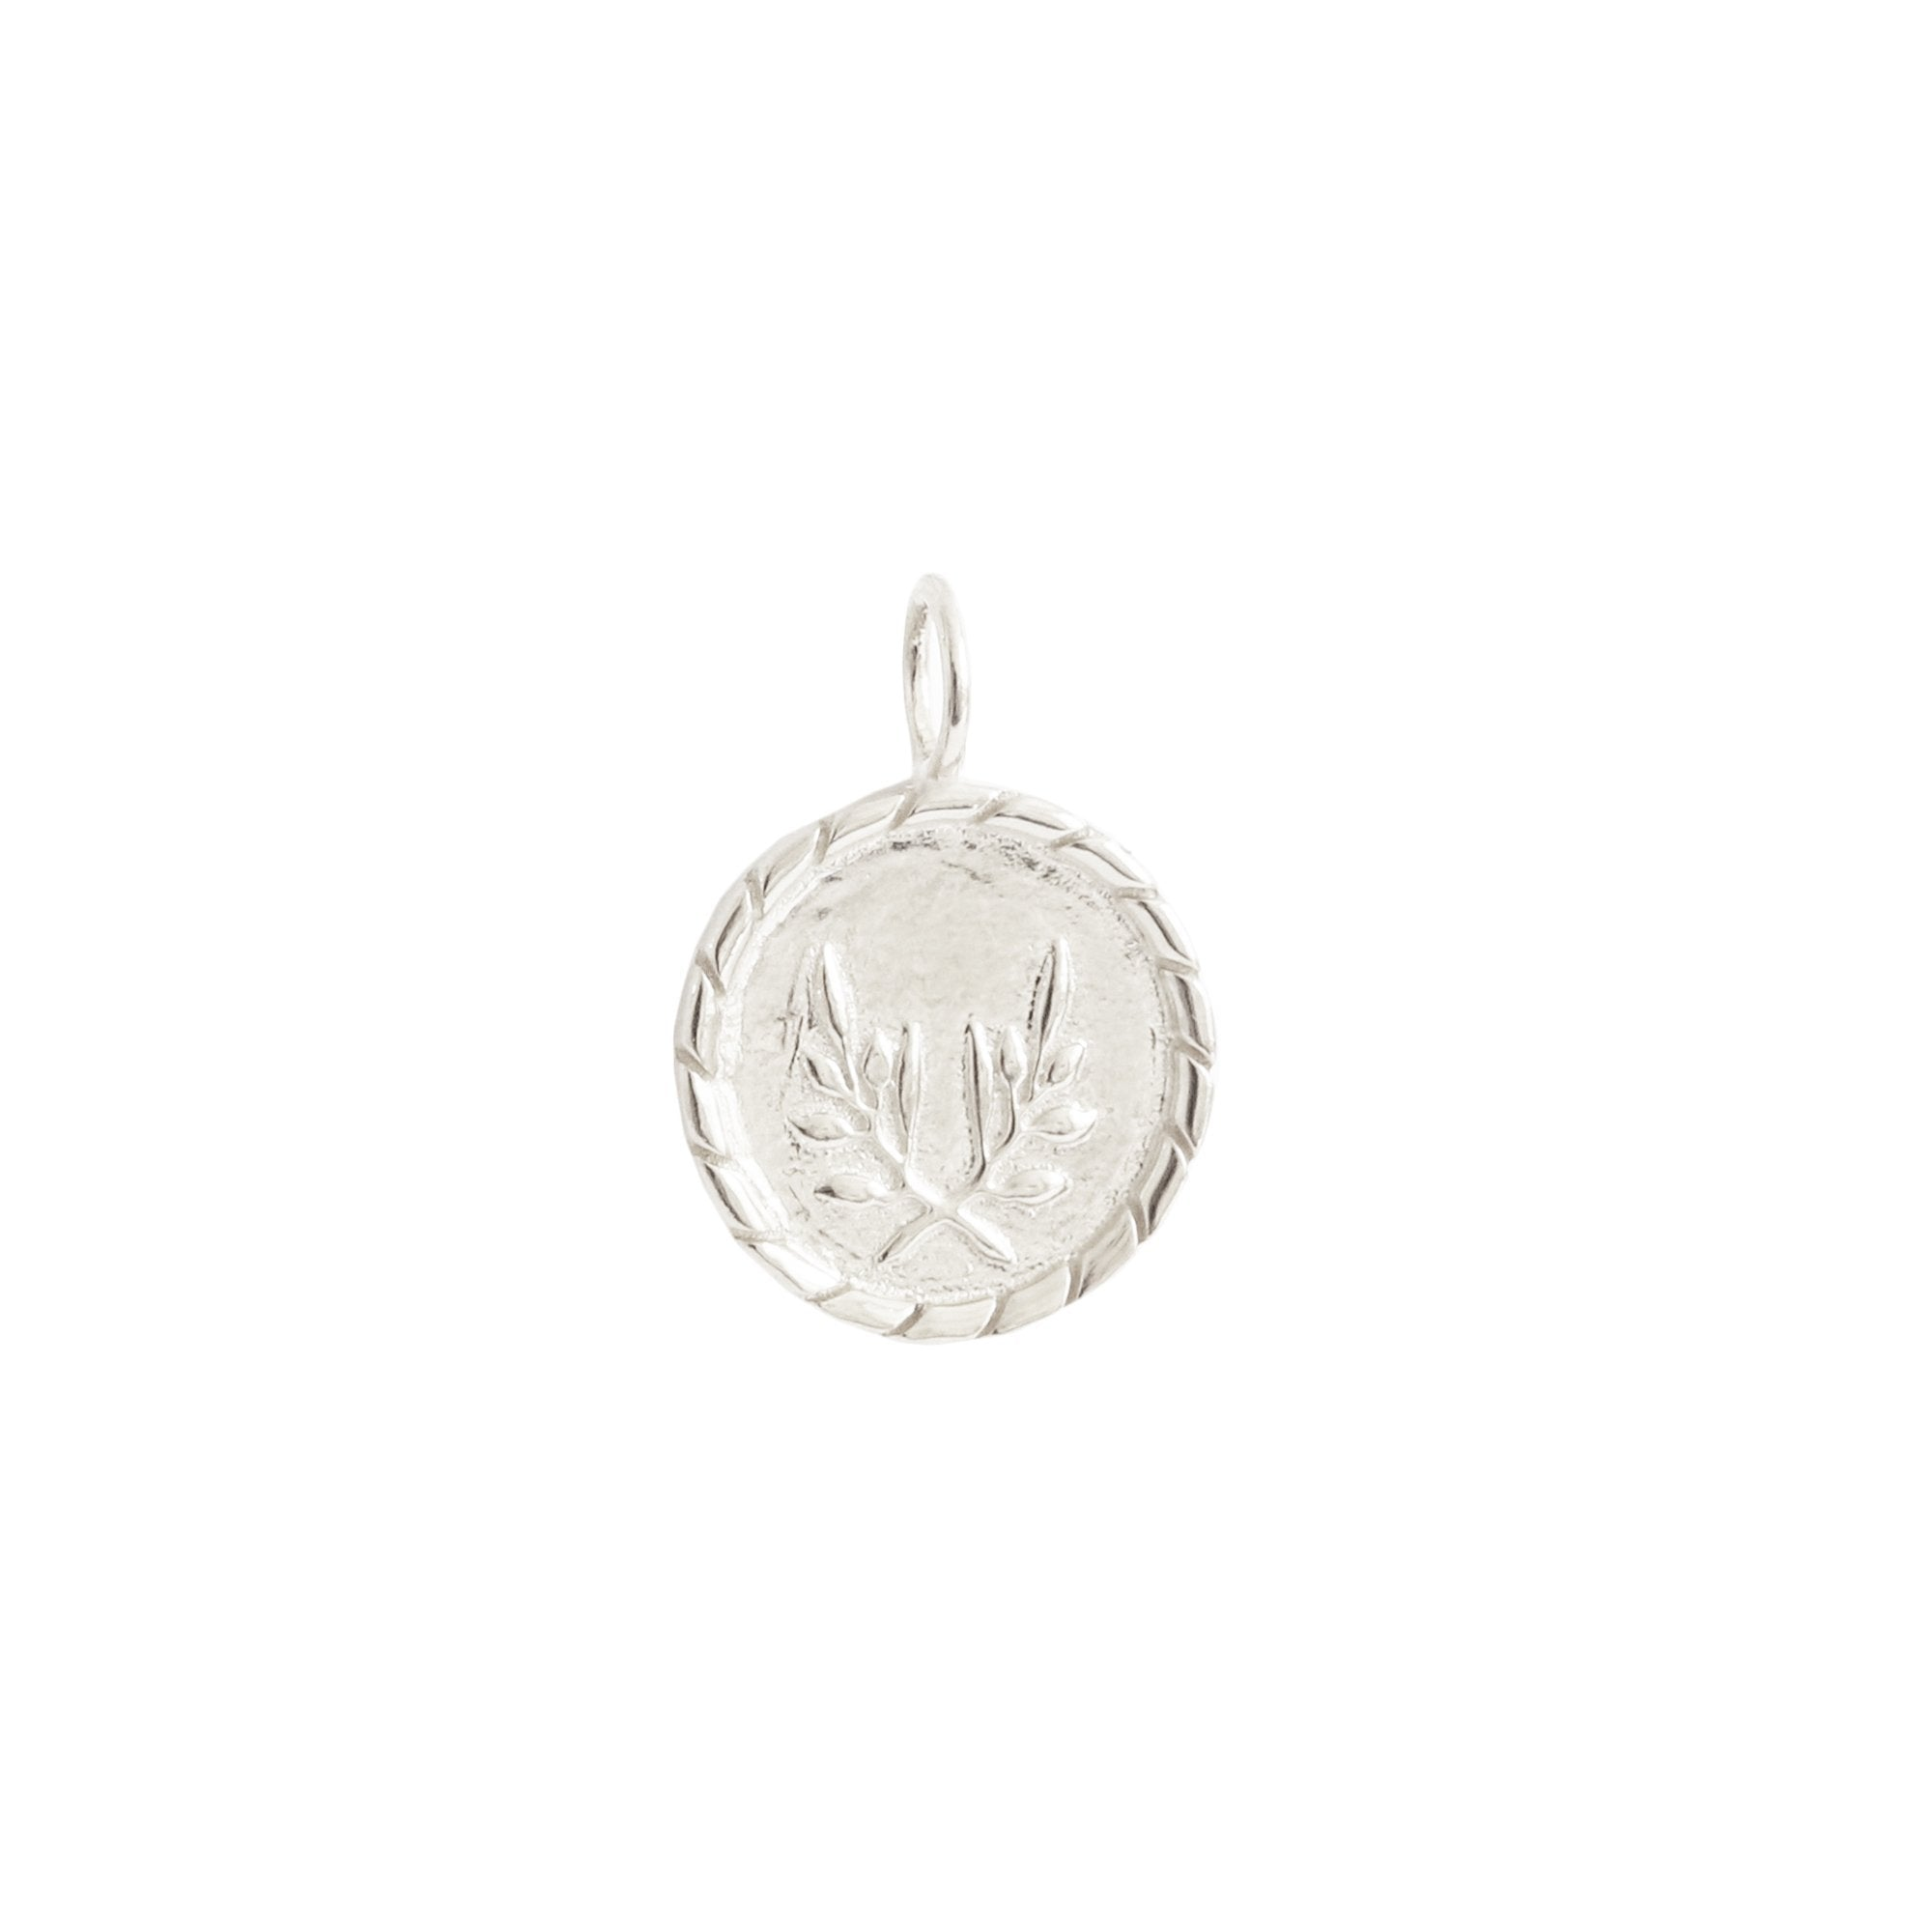 FRAICHE INSPIRE TOKEN PENDANT - SILVER - SO PRETTY CARA COTTER